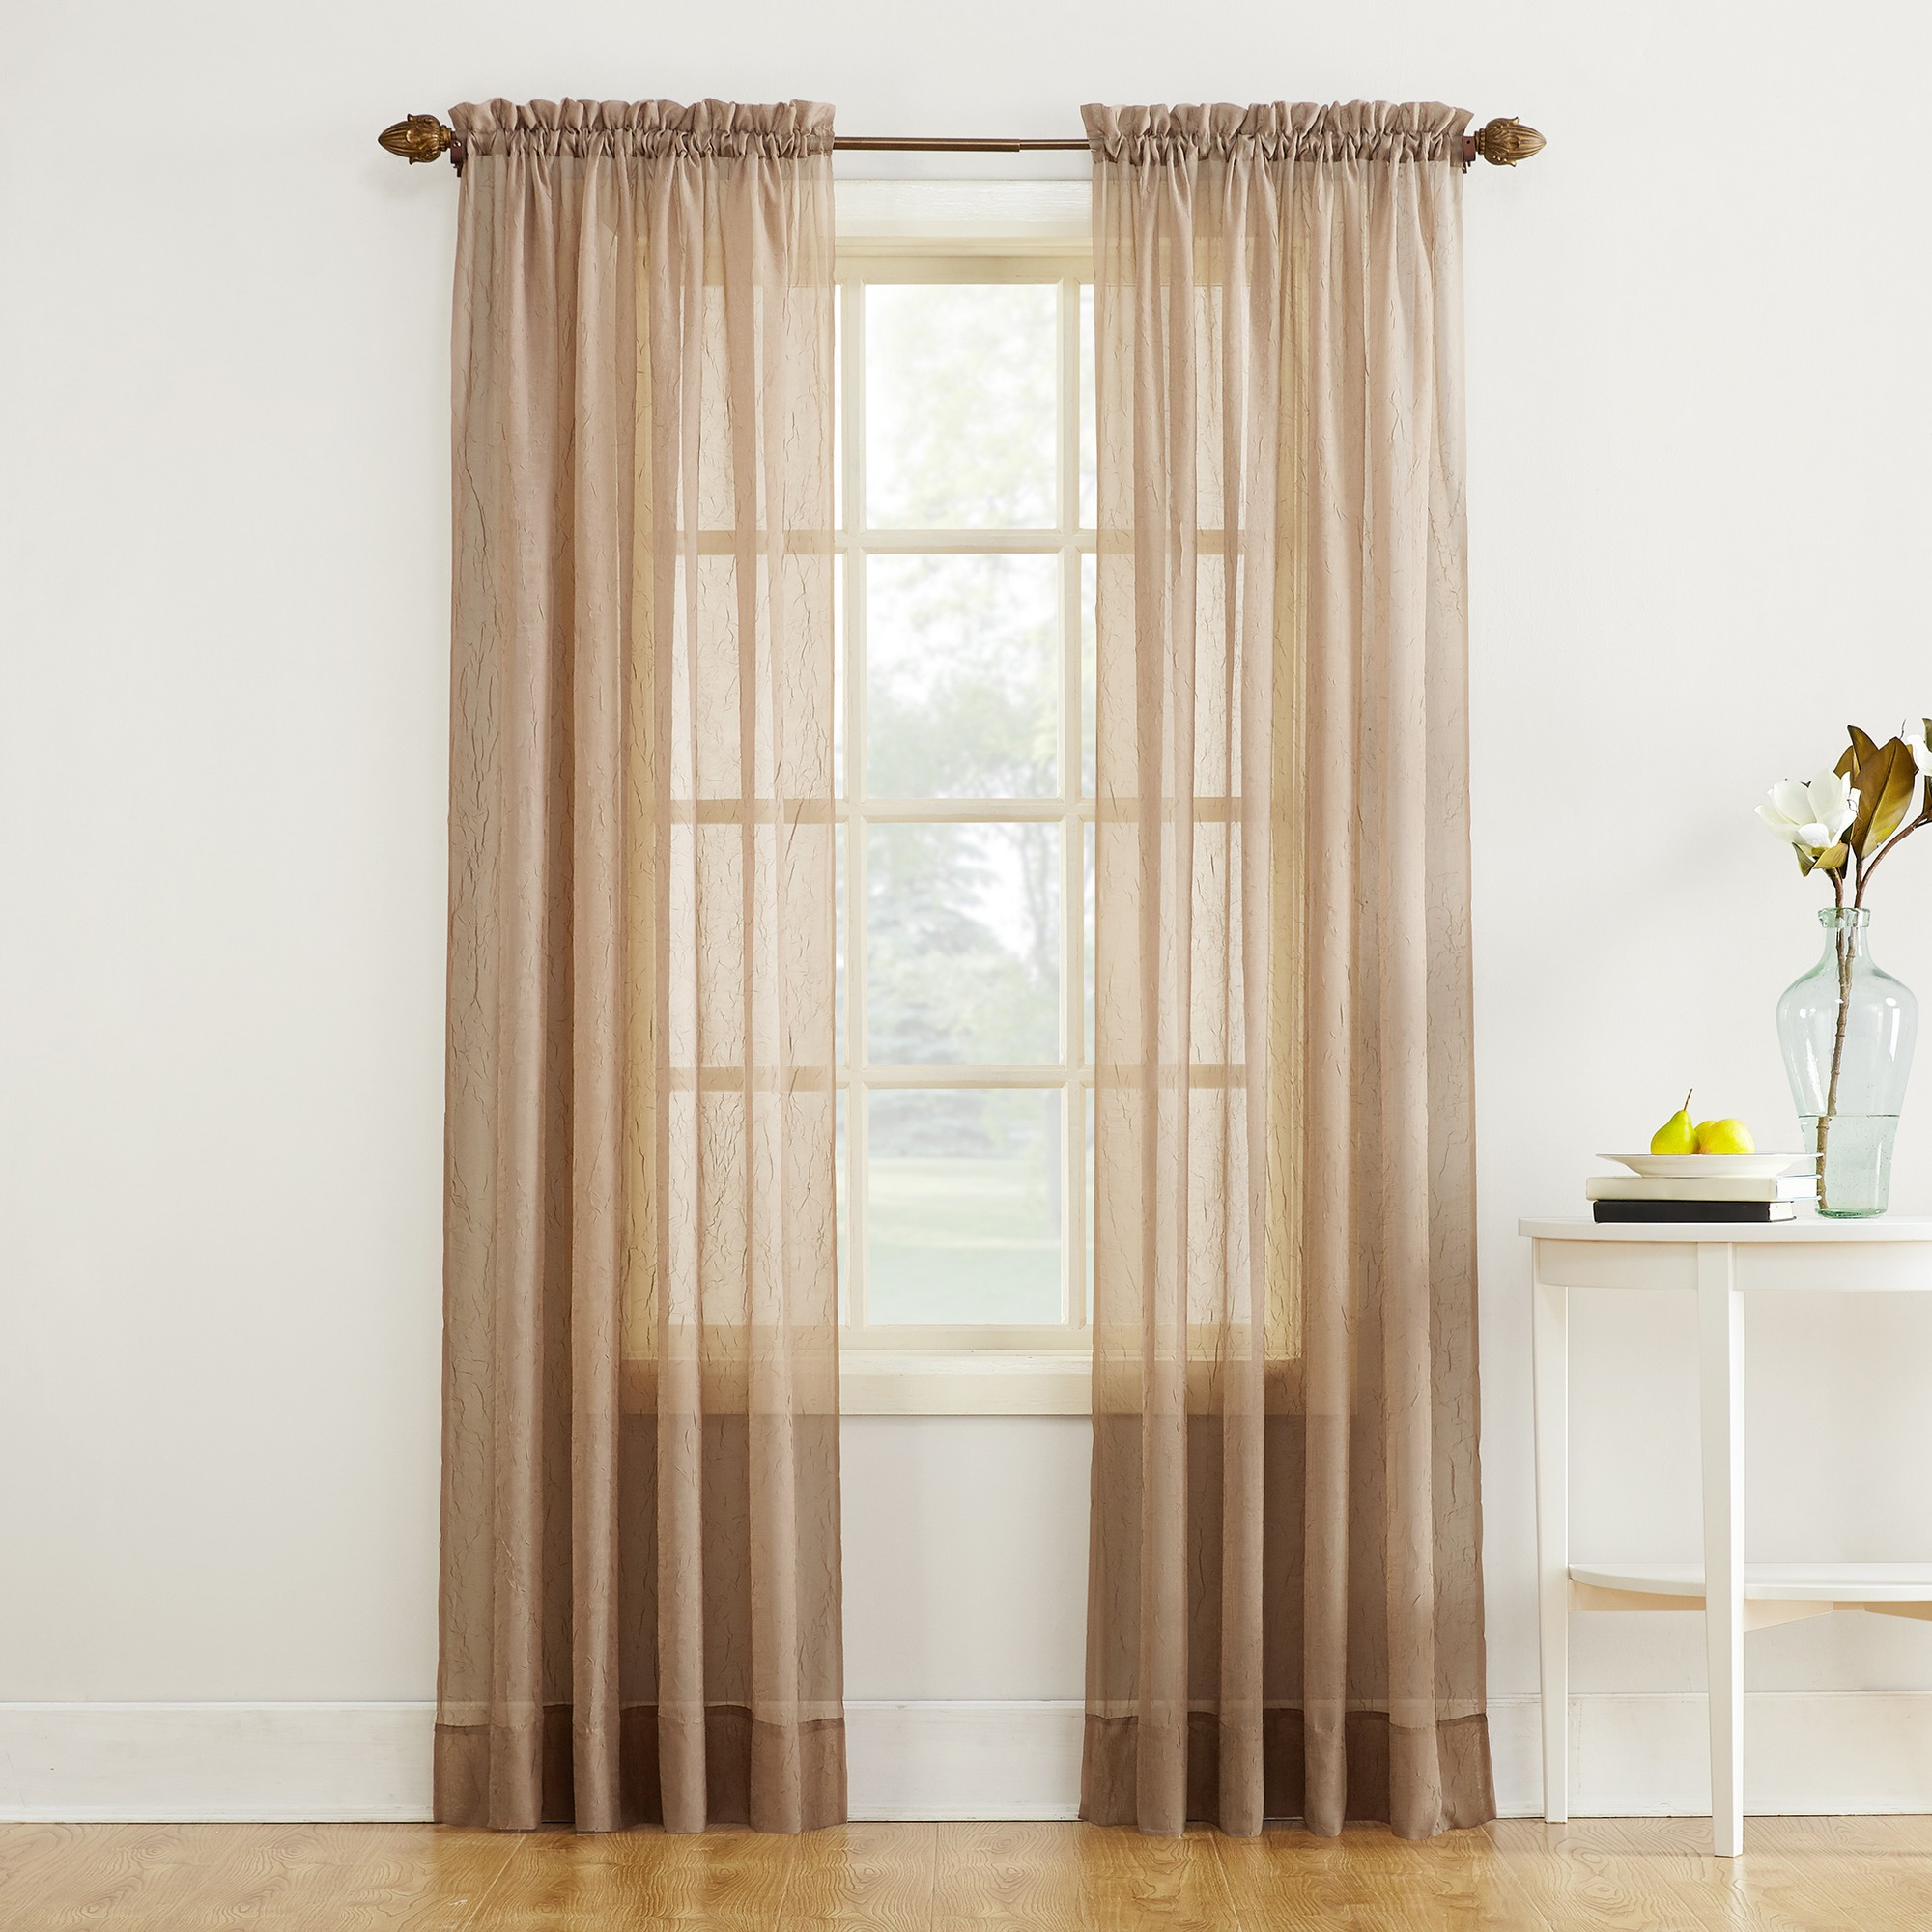 51 X63 Erica Crushed Sheer Voile Rod Pocket Curtain Panel Taupe